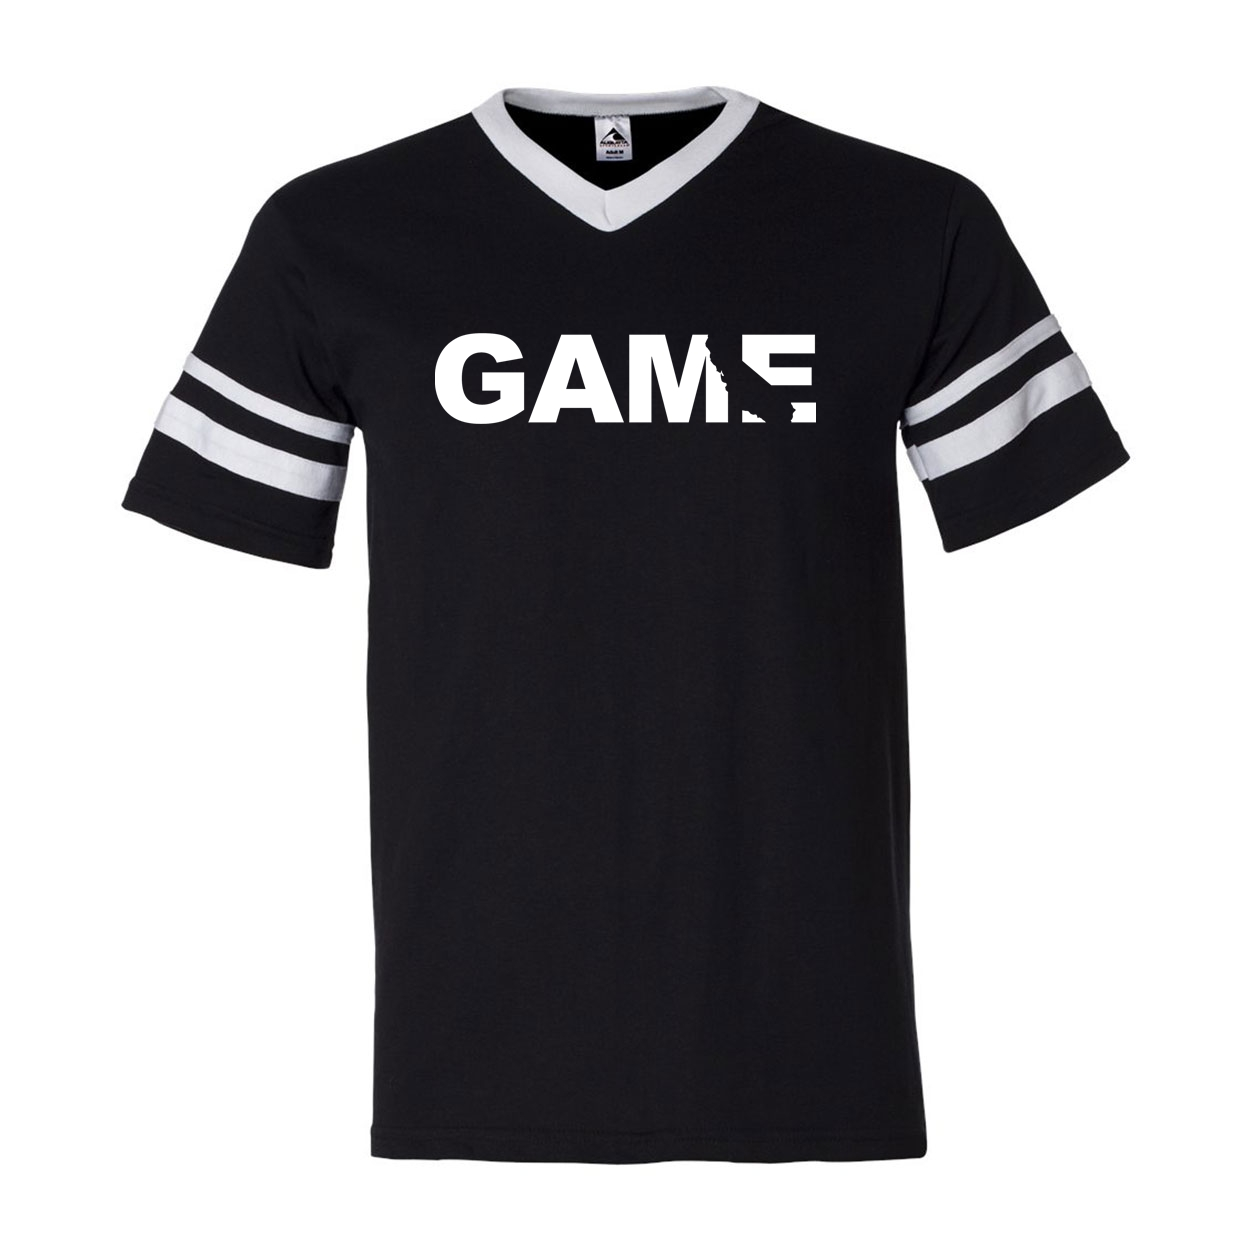 Game California Classic Premium Striped Jersey T-Shirt Black/White (White Logo)